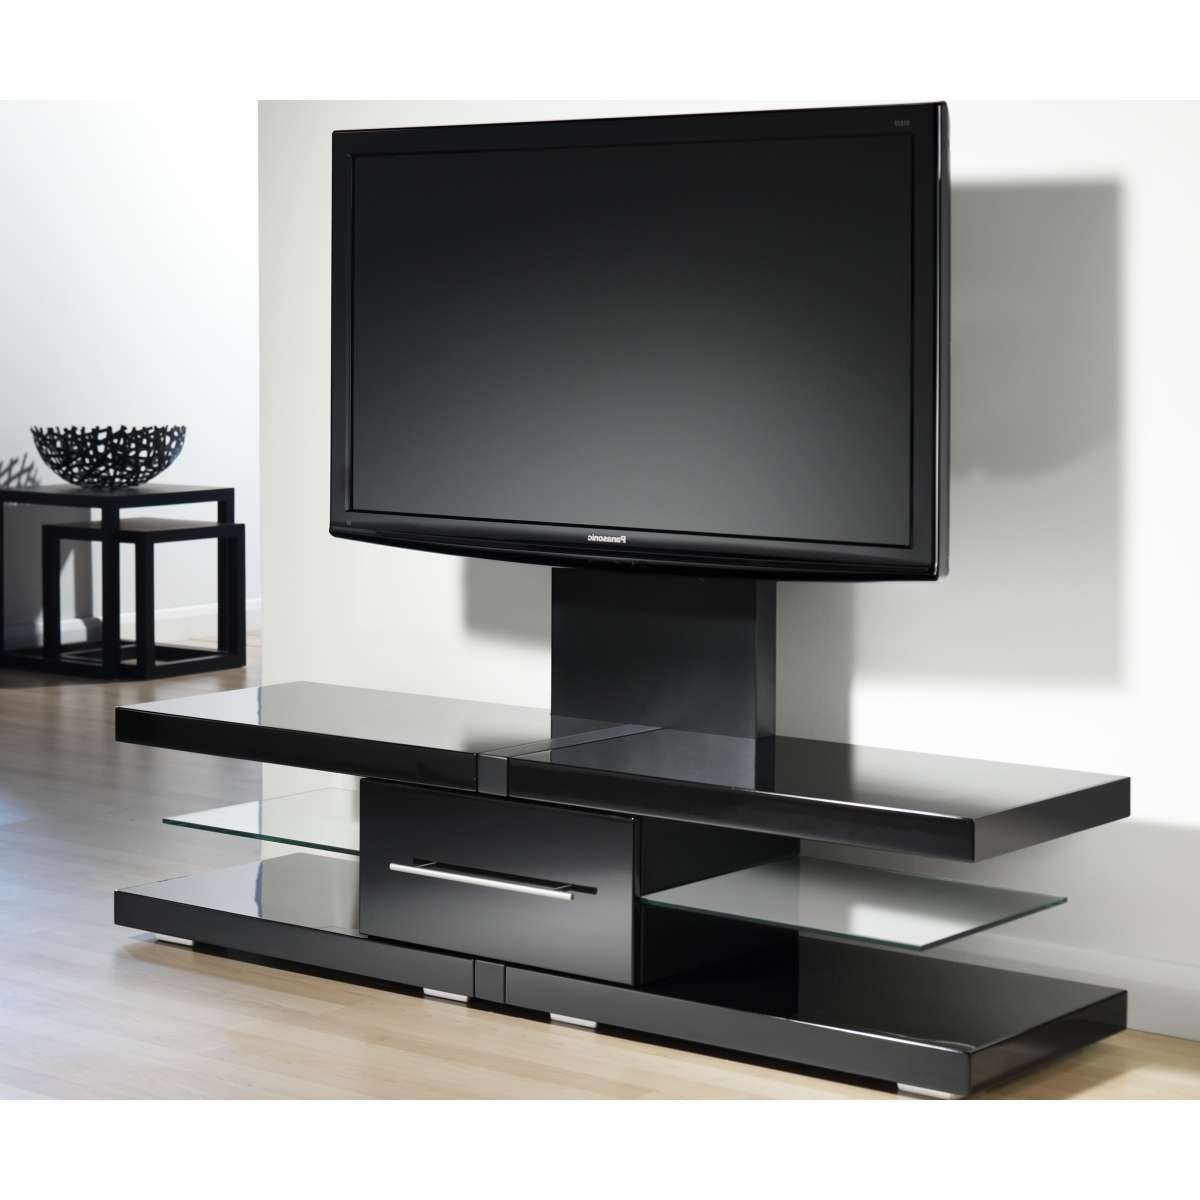 Modern Black Tone Wide Screen Tv Stand With Display Shelves And With Regard To Wide Screen Tv Stands (View 9 of 15)